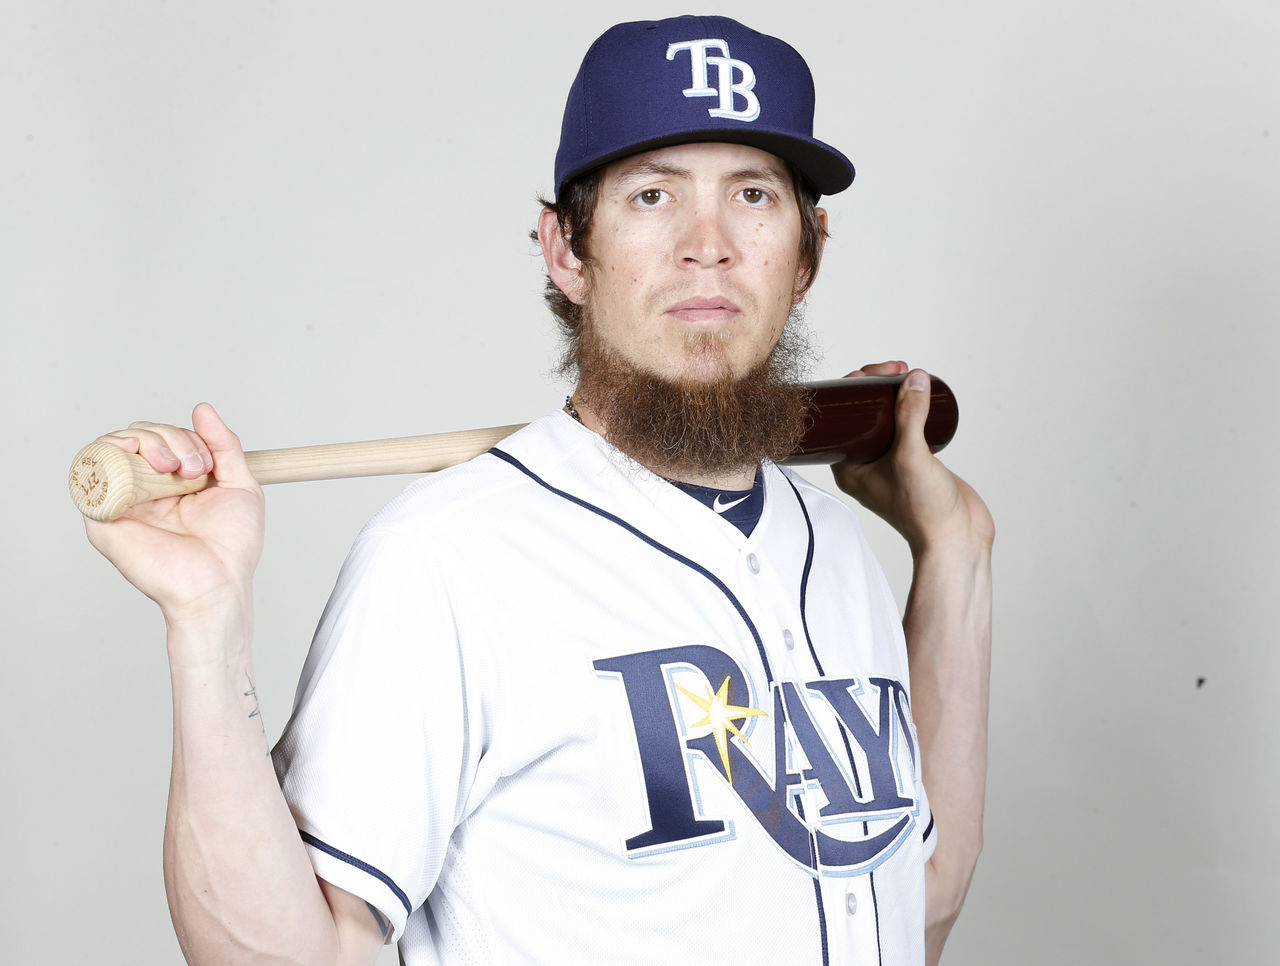 Cropped 2017 02 19t090431z 921231096 nocid rtrmadp 3 mlb tampa bay rays media day